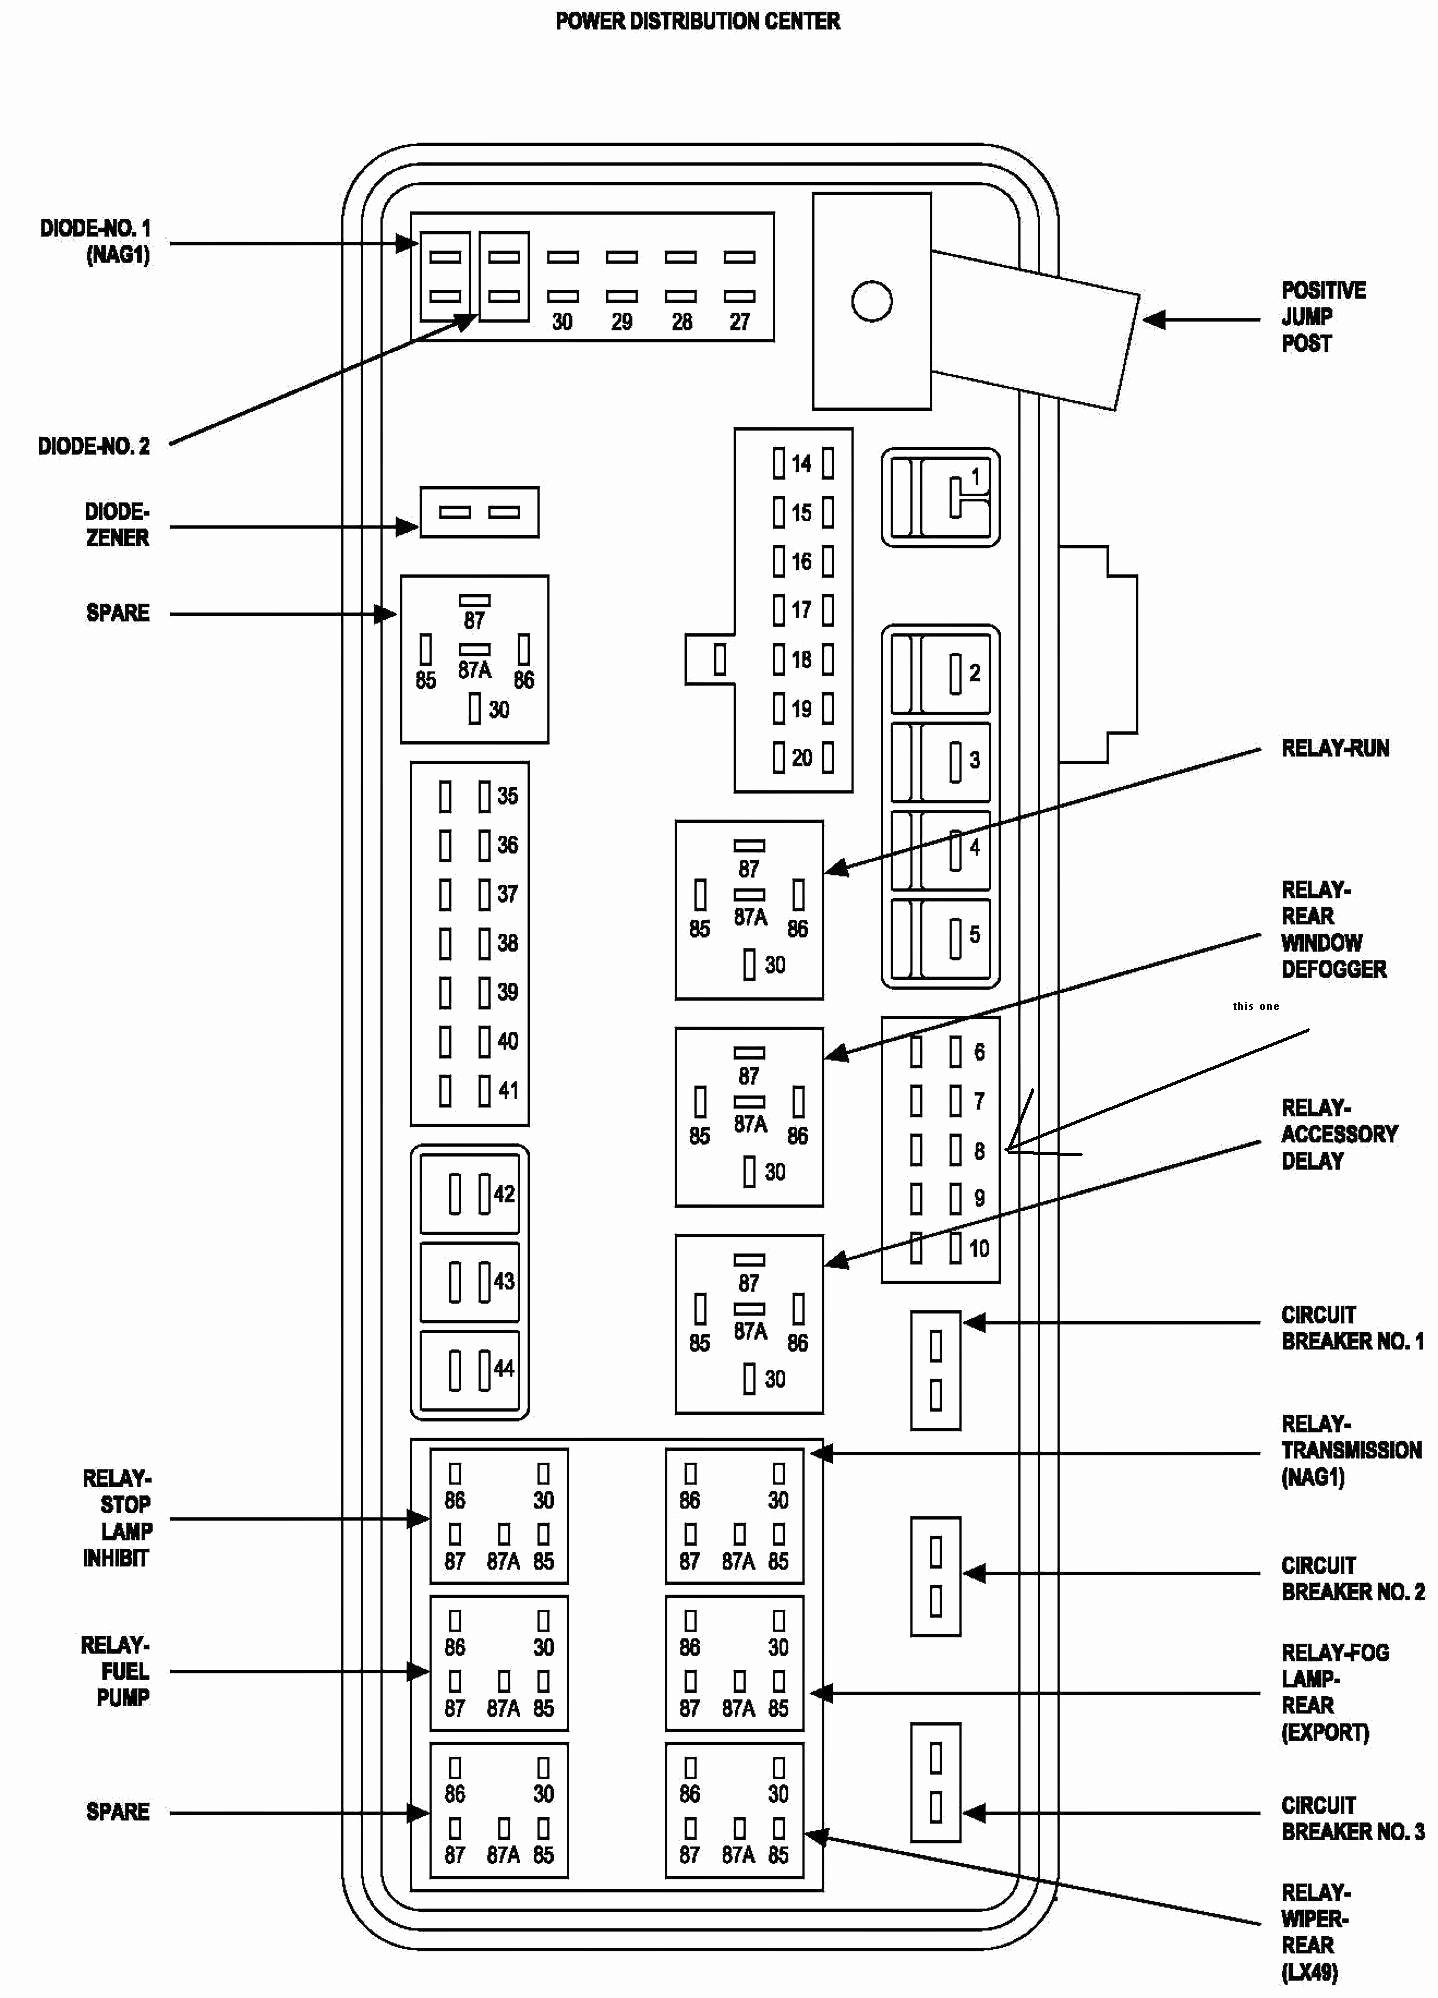 2009 Dodge Caliber Wiring Diagram